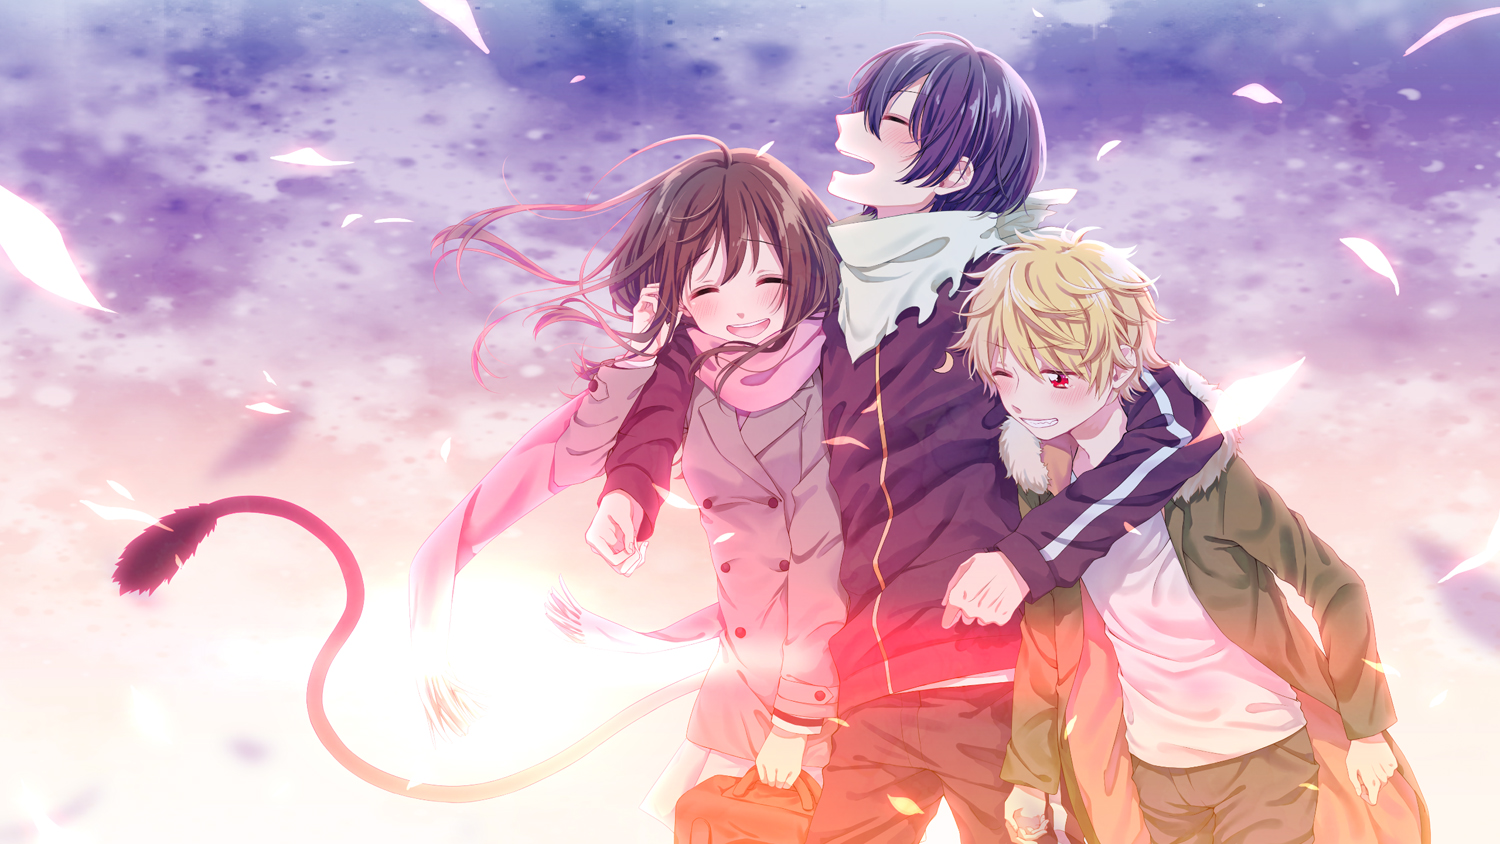 Has the creators of noragami made another animé?